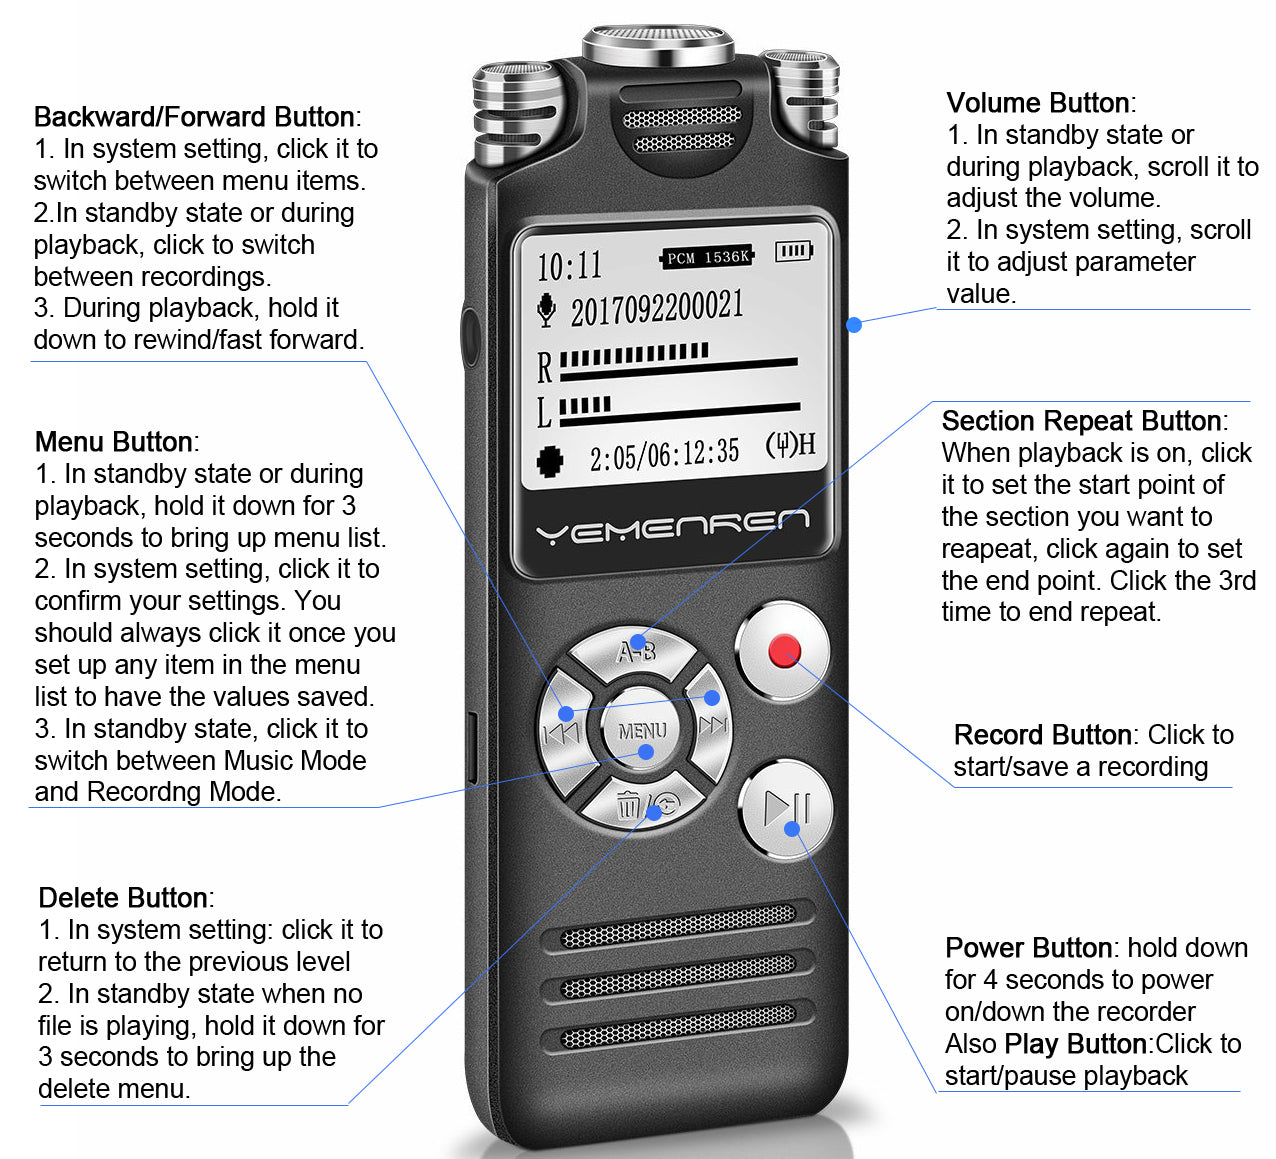 R5 Manual - Button Description